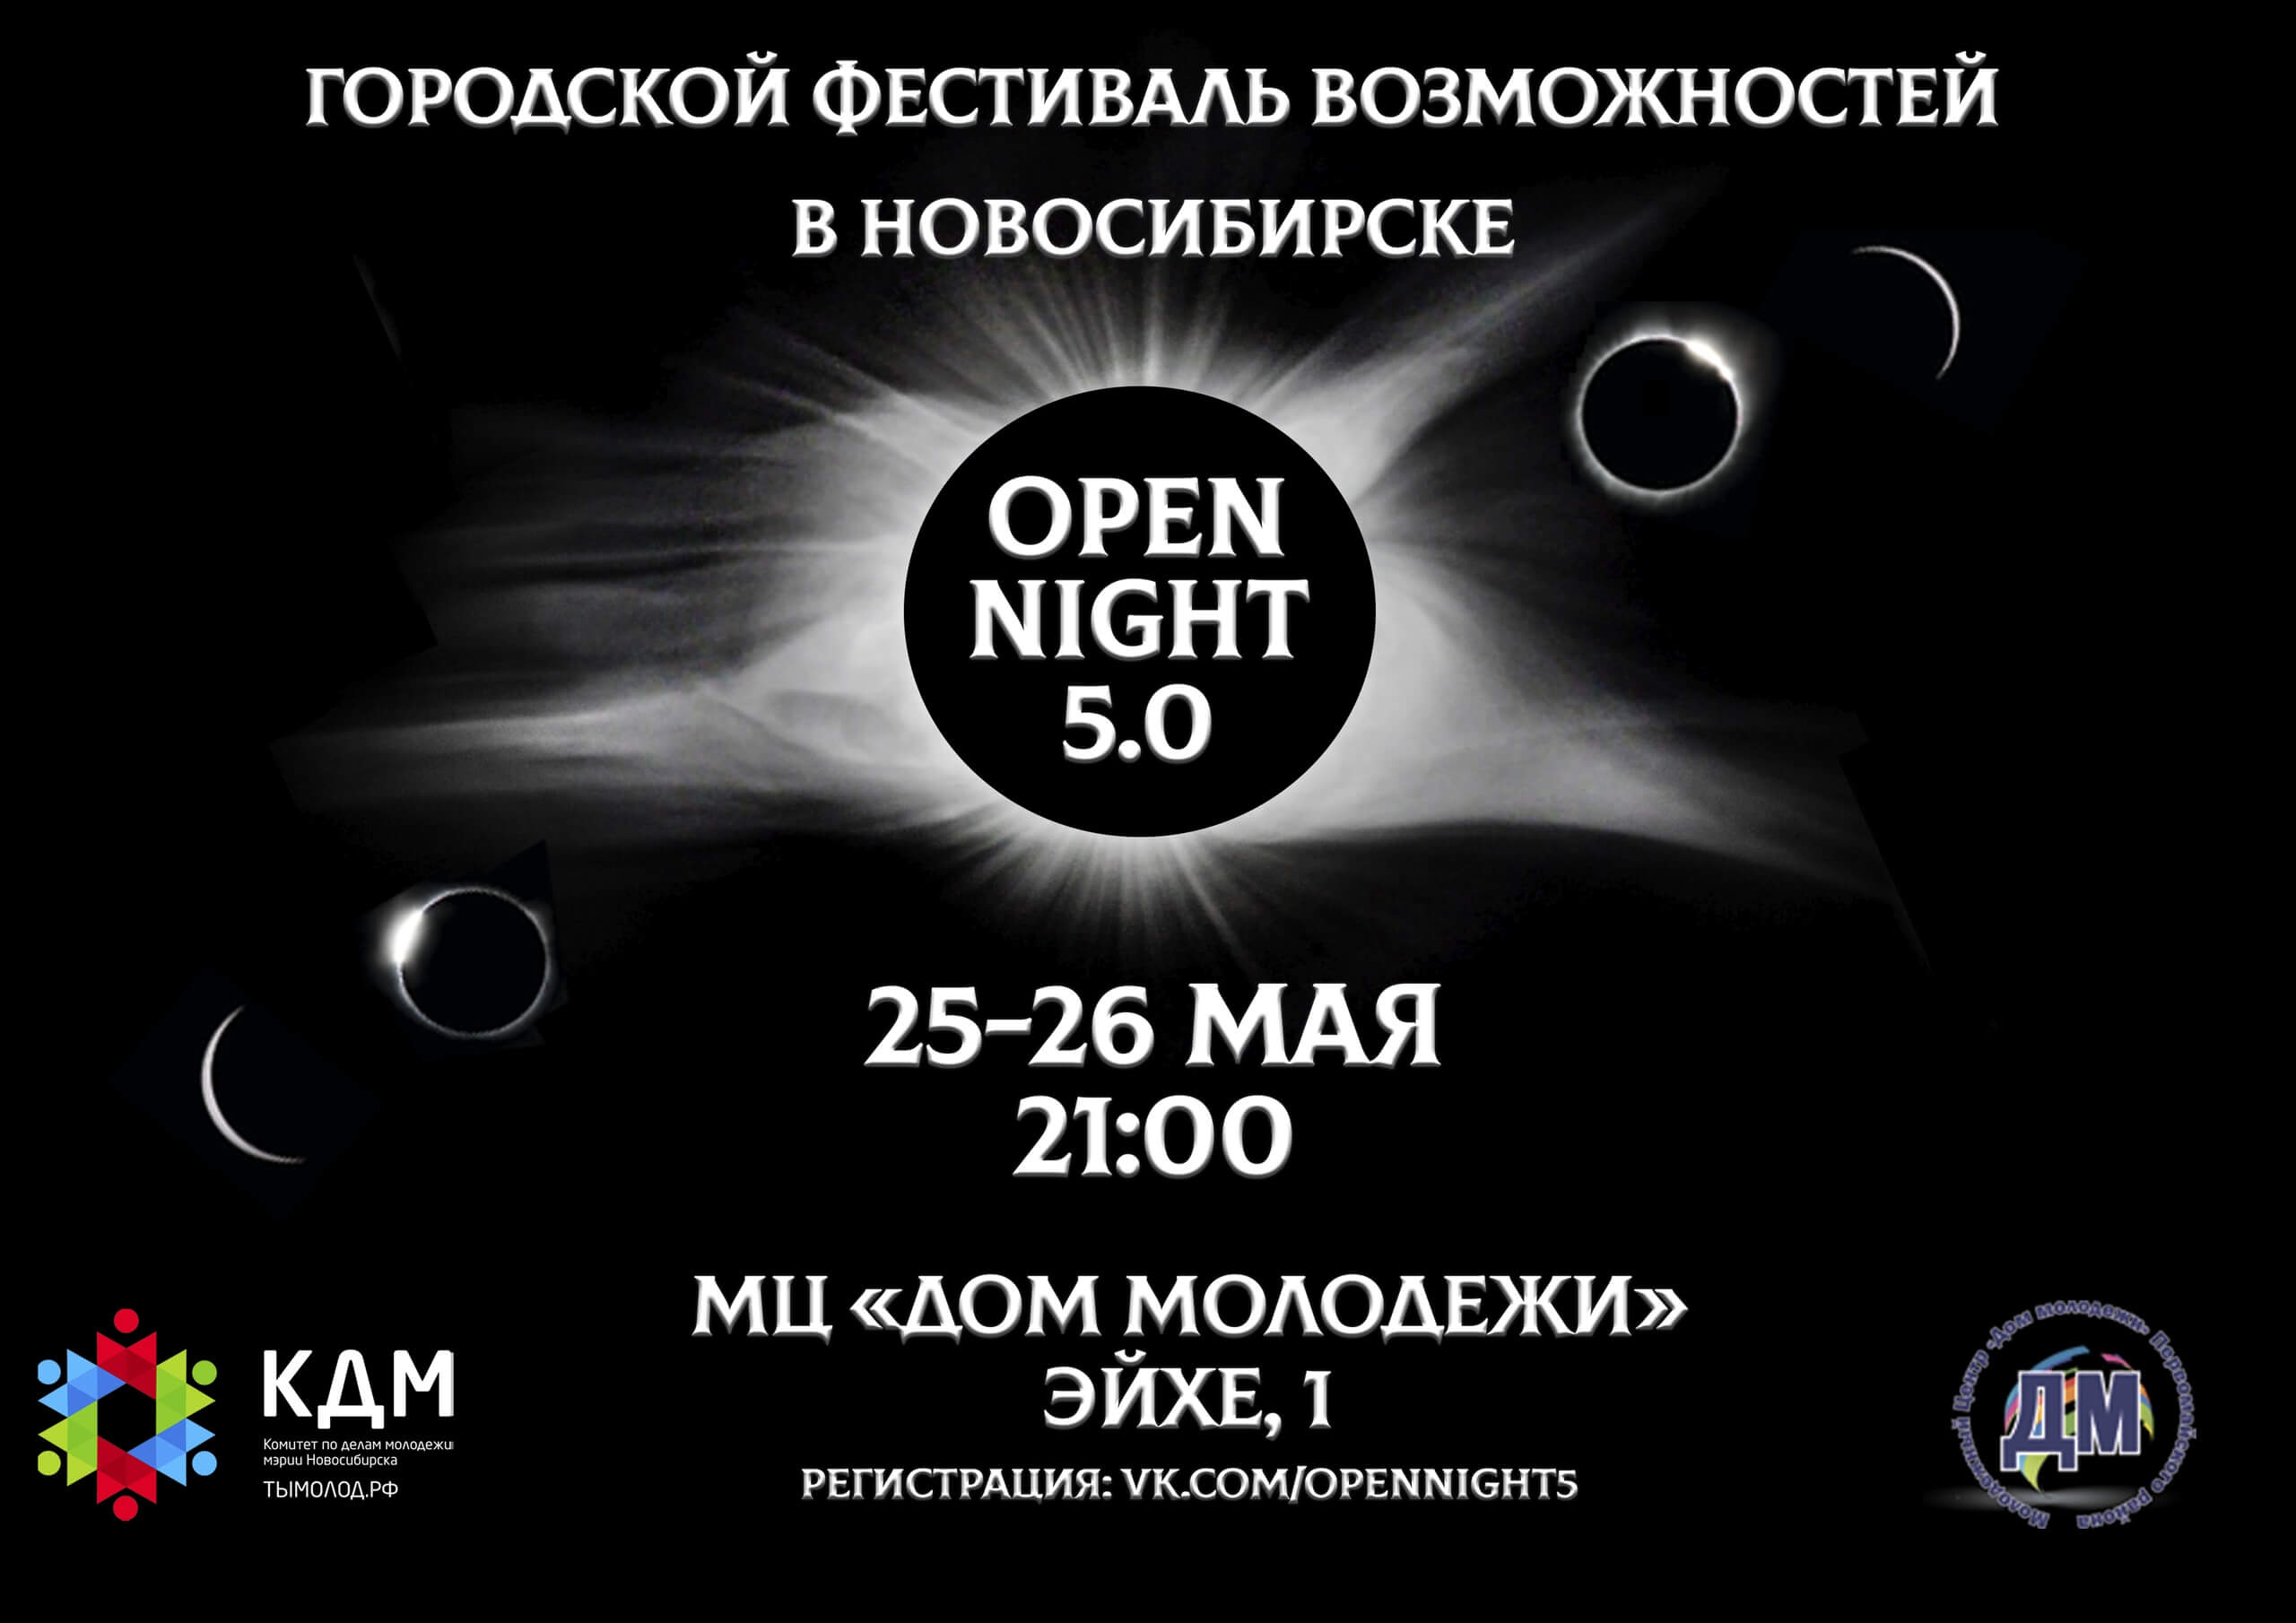 OPEN NIGHT БЛИЗКО!